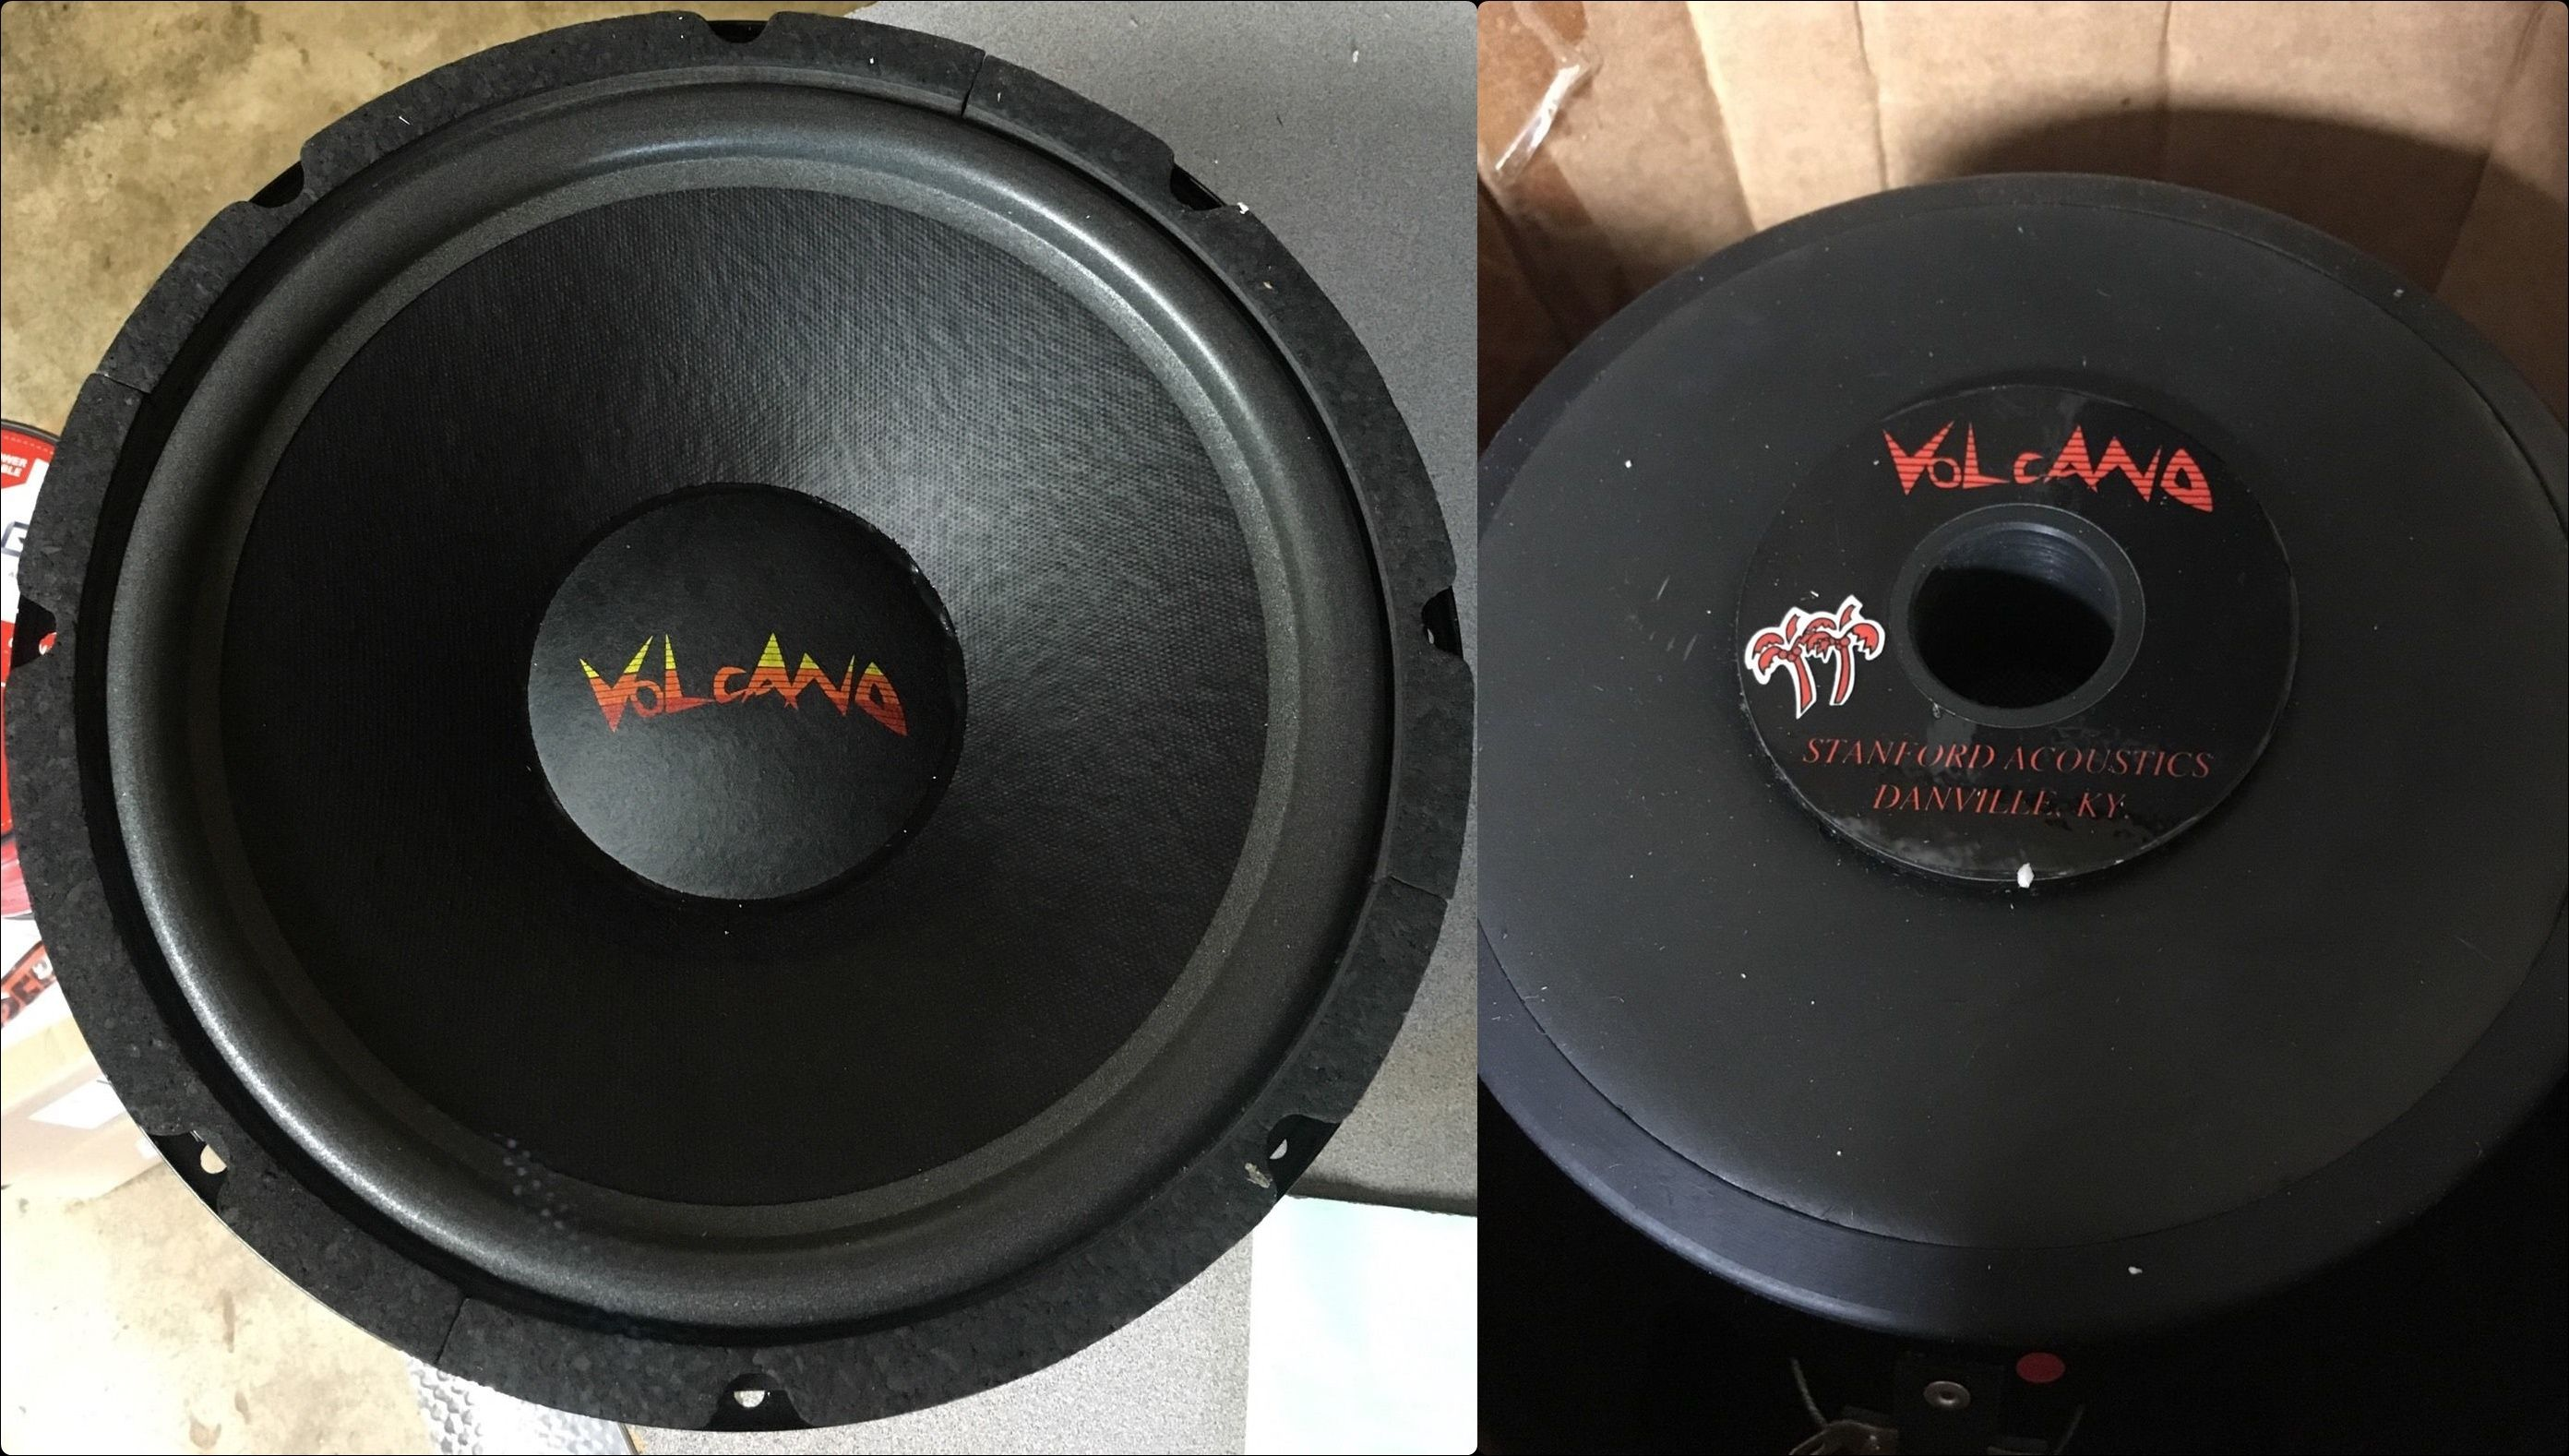 Stanford Acoustics Volcano 12s200 12 Inch Subwoofer Made In Kentucky Usa Car Audio 12 Inch Subwoofer Subwoofer